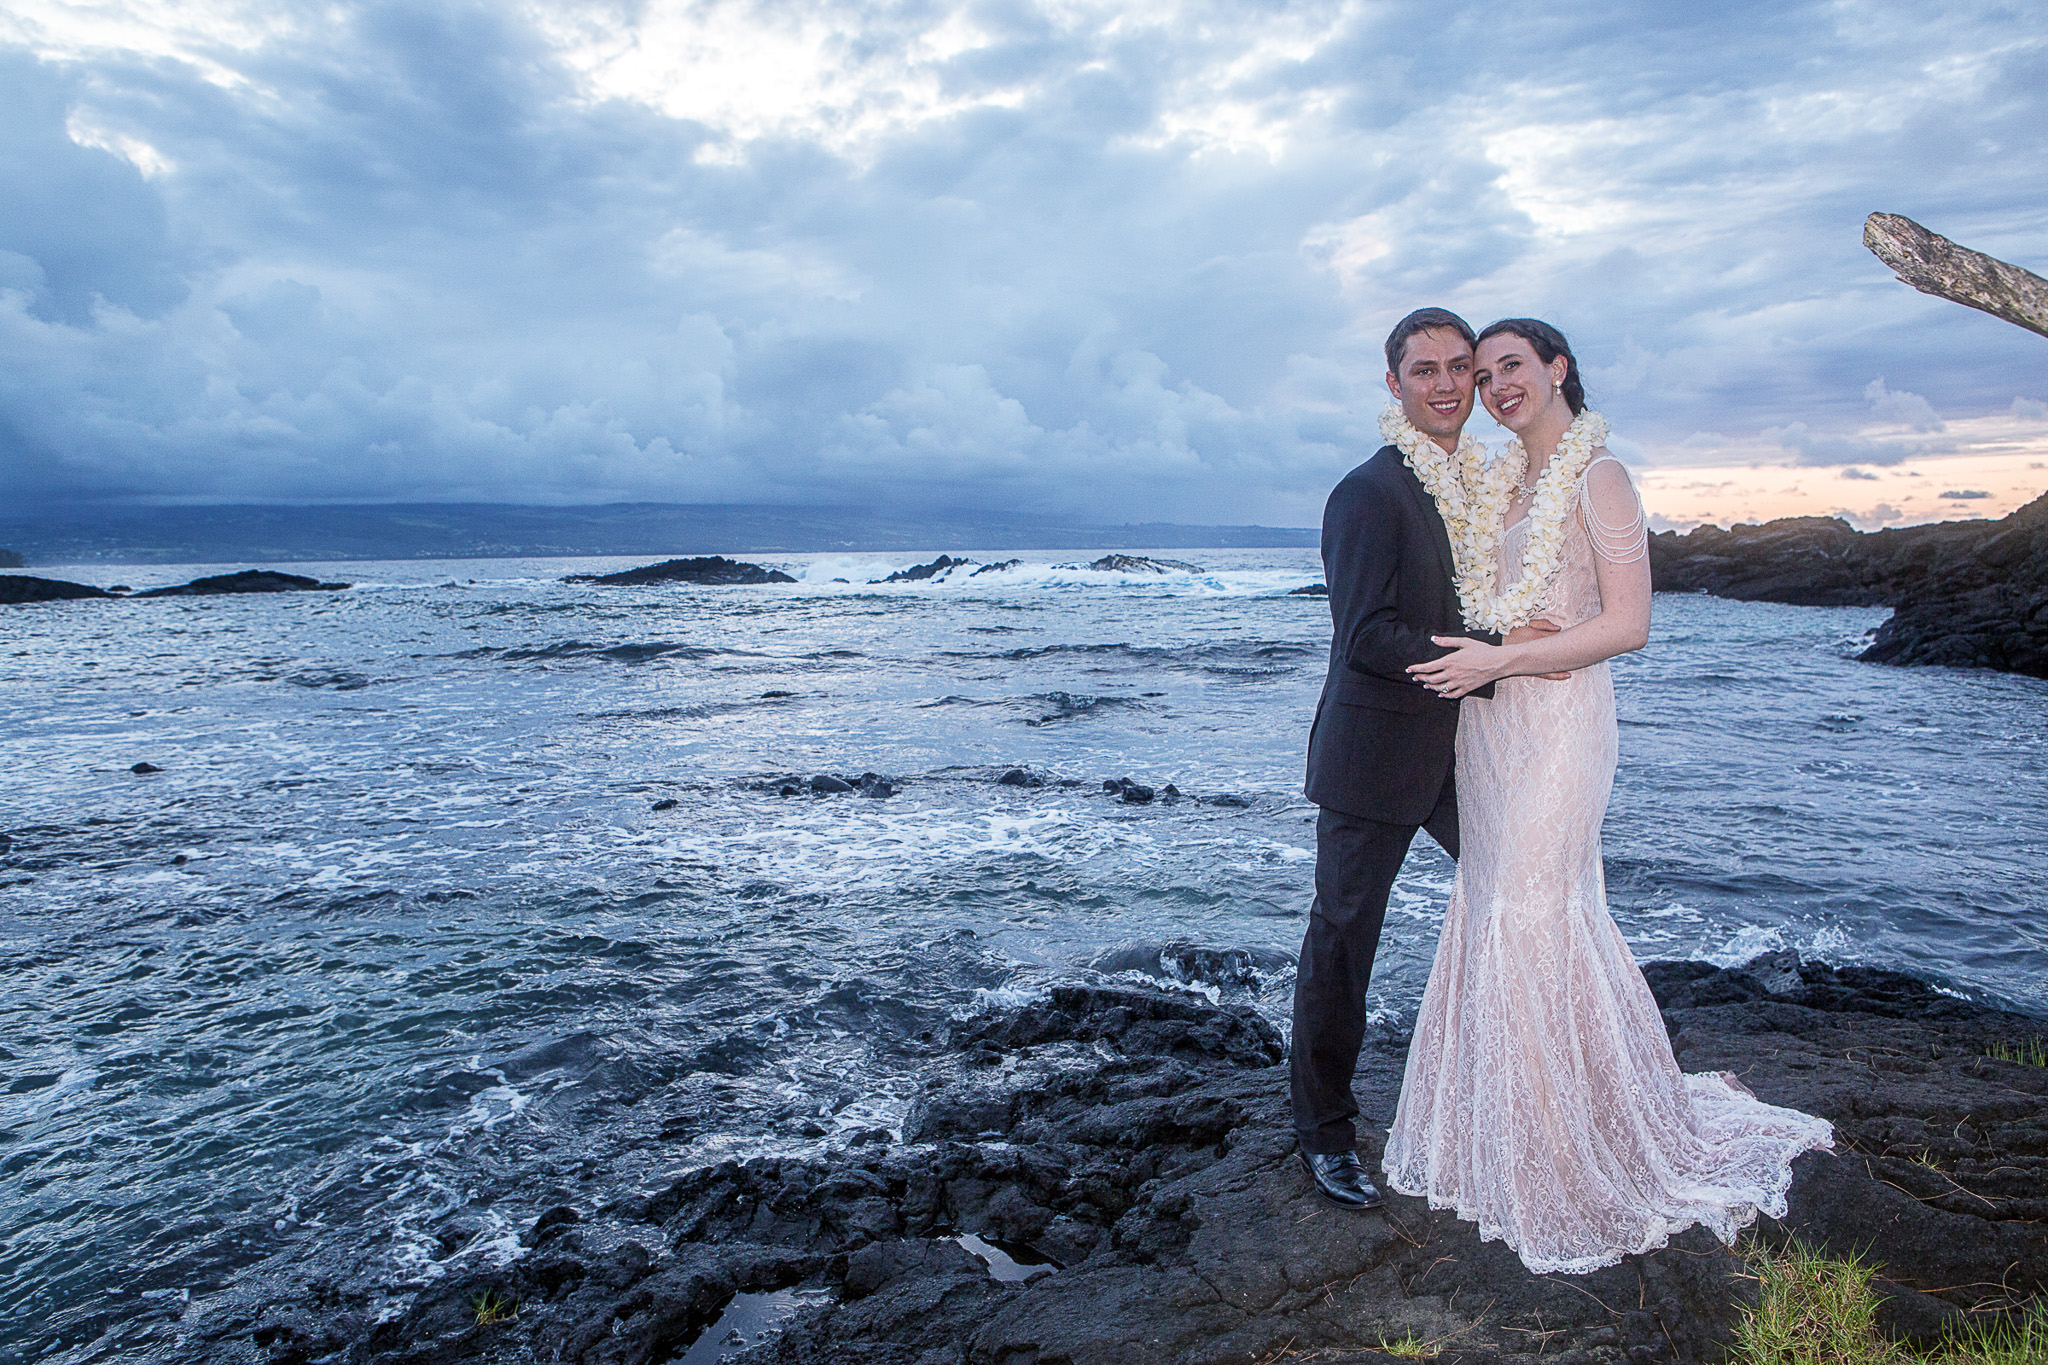 Hawaii Elopement Photography - Sloane and Thomas get Married